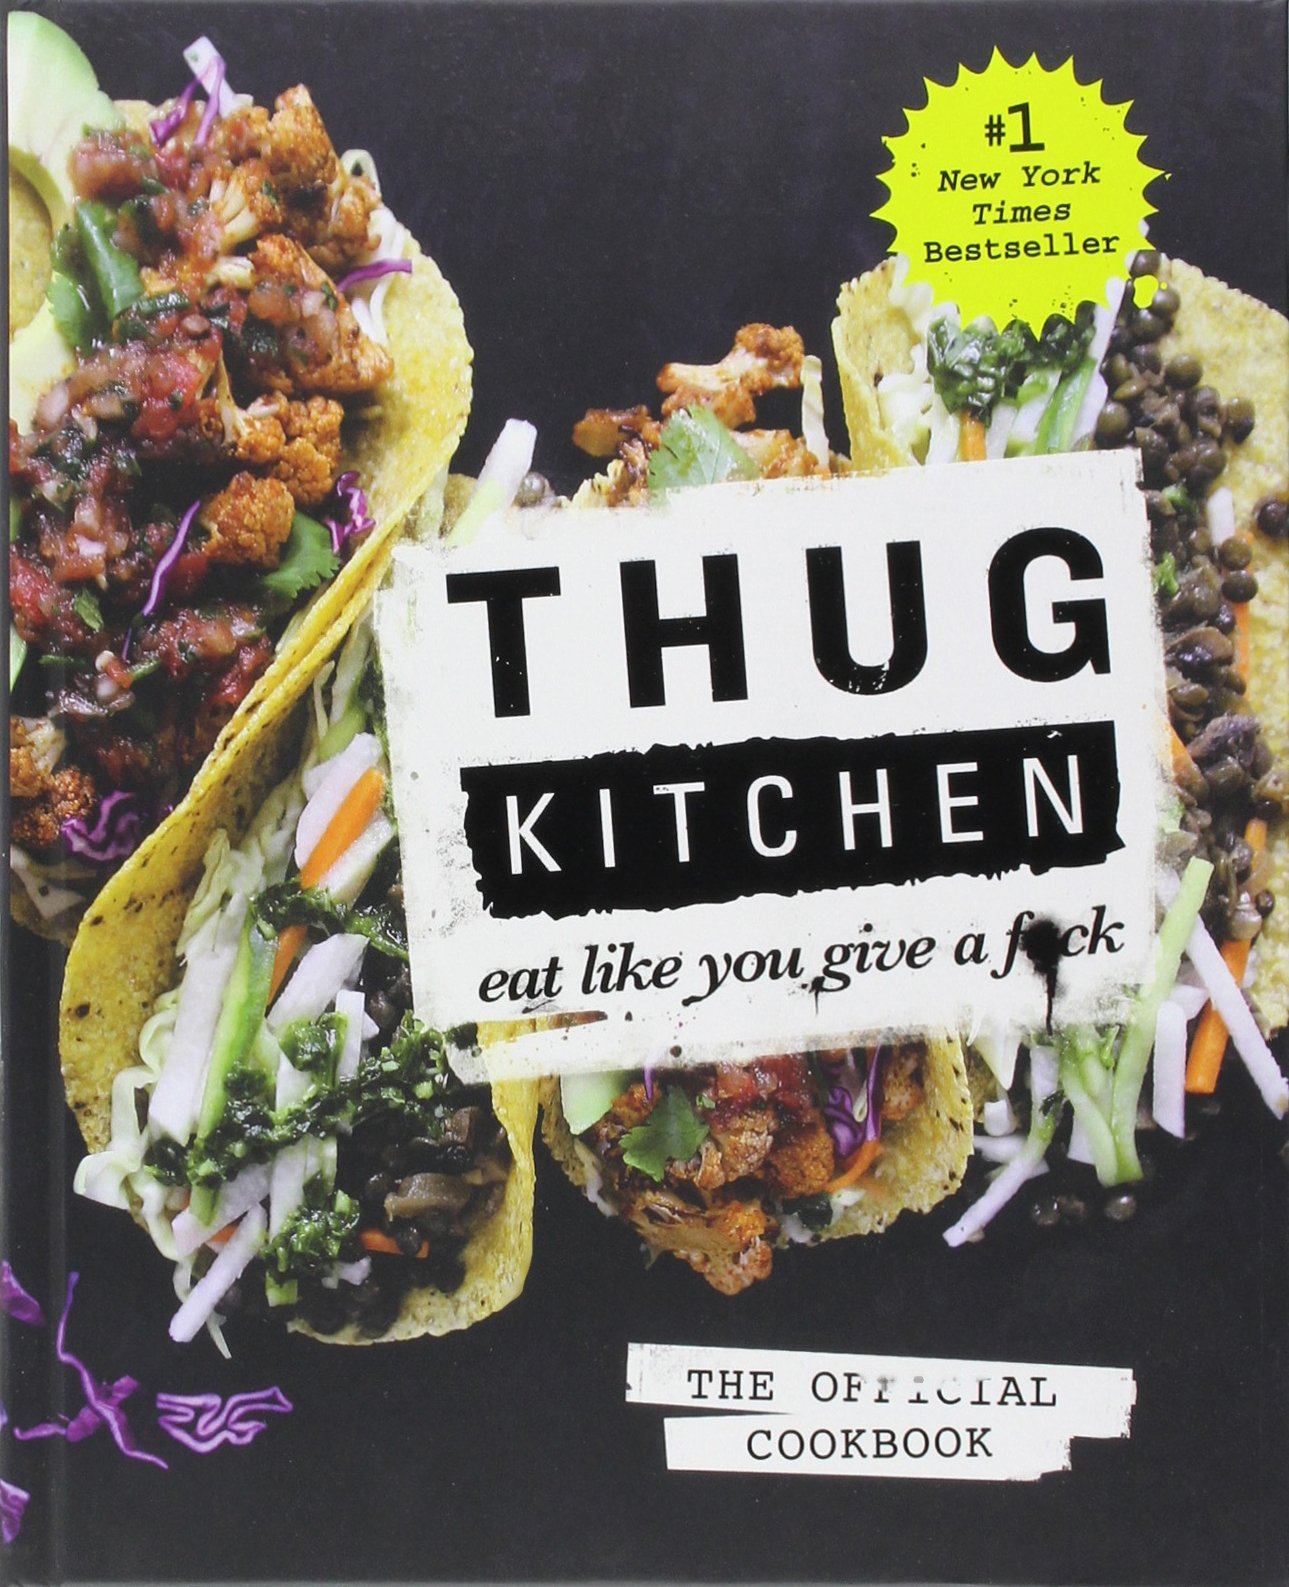 Thug Kitchen - Thug Kitchen - East Like You Give a F*ck